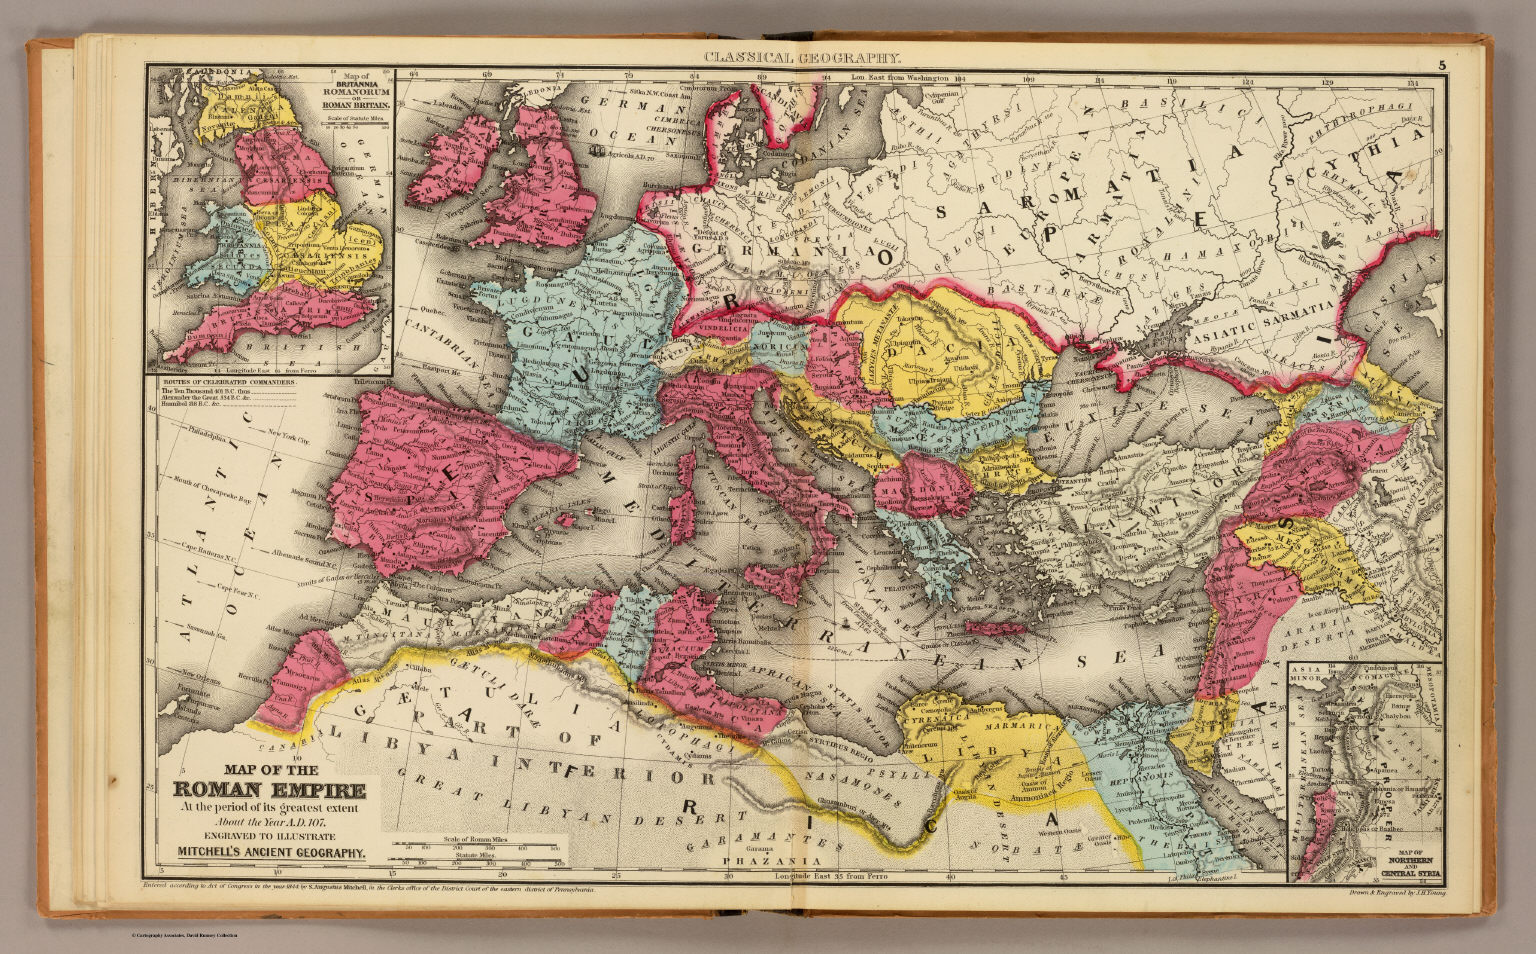 Roman Empire David Rumsey Historical Map Collection